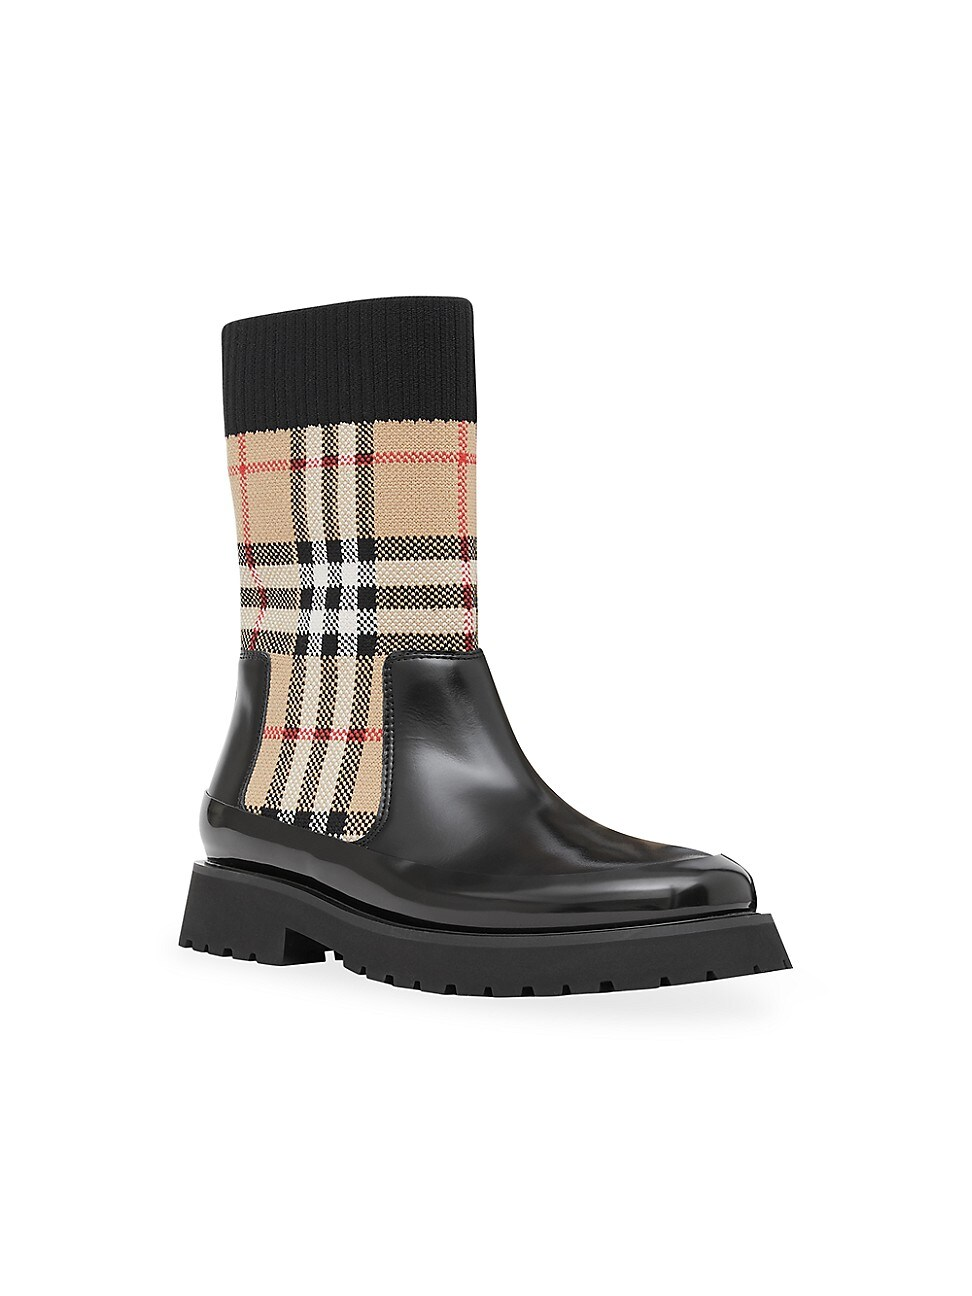 BURBERRY KID'S DOUG BOOTS